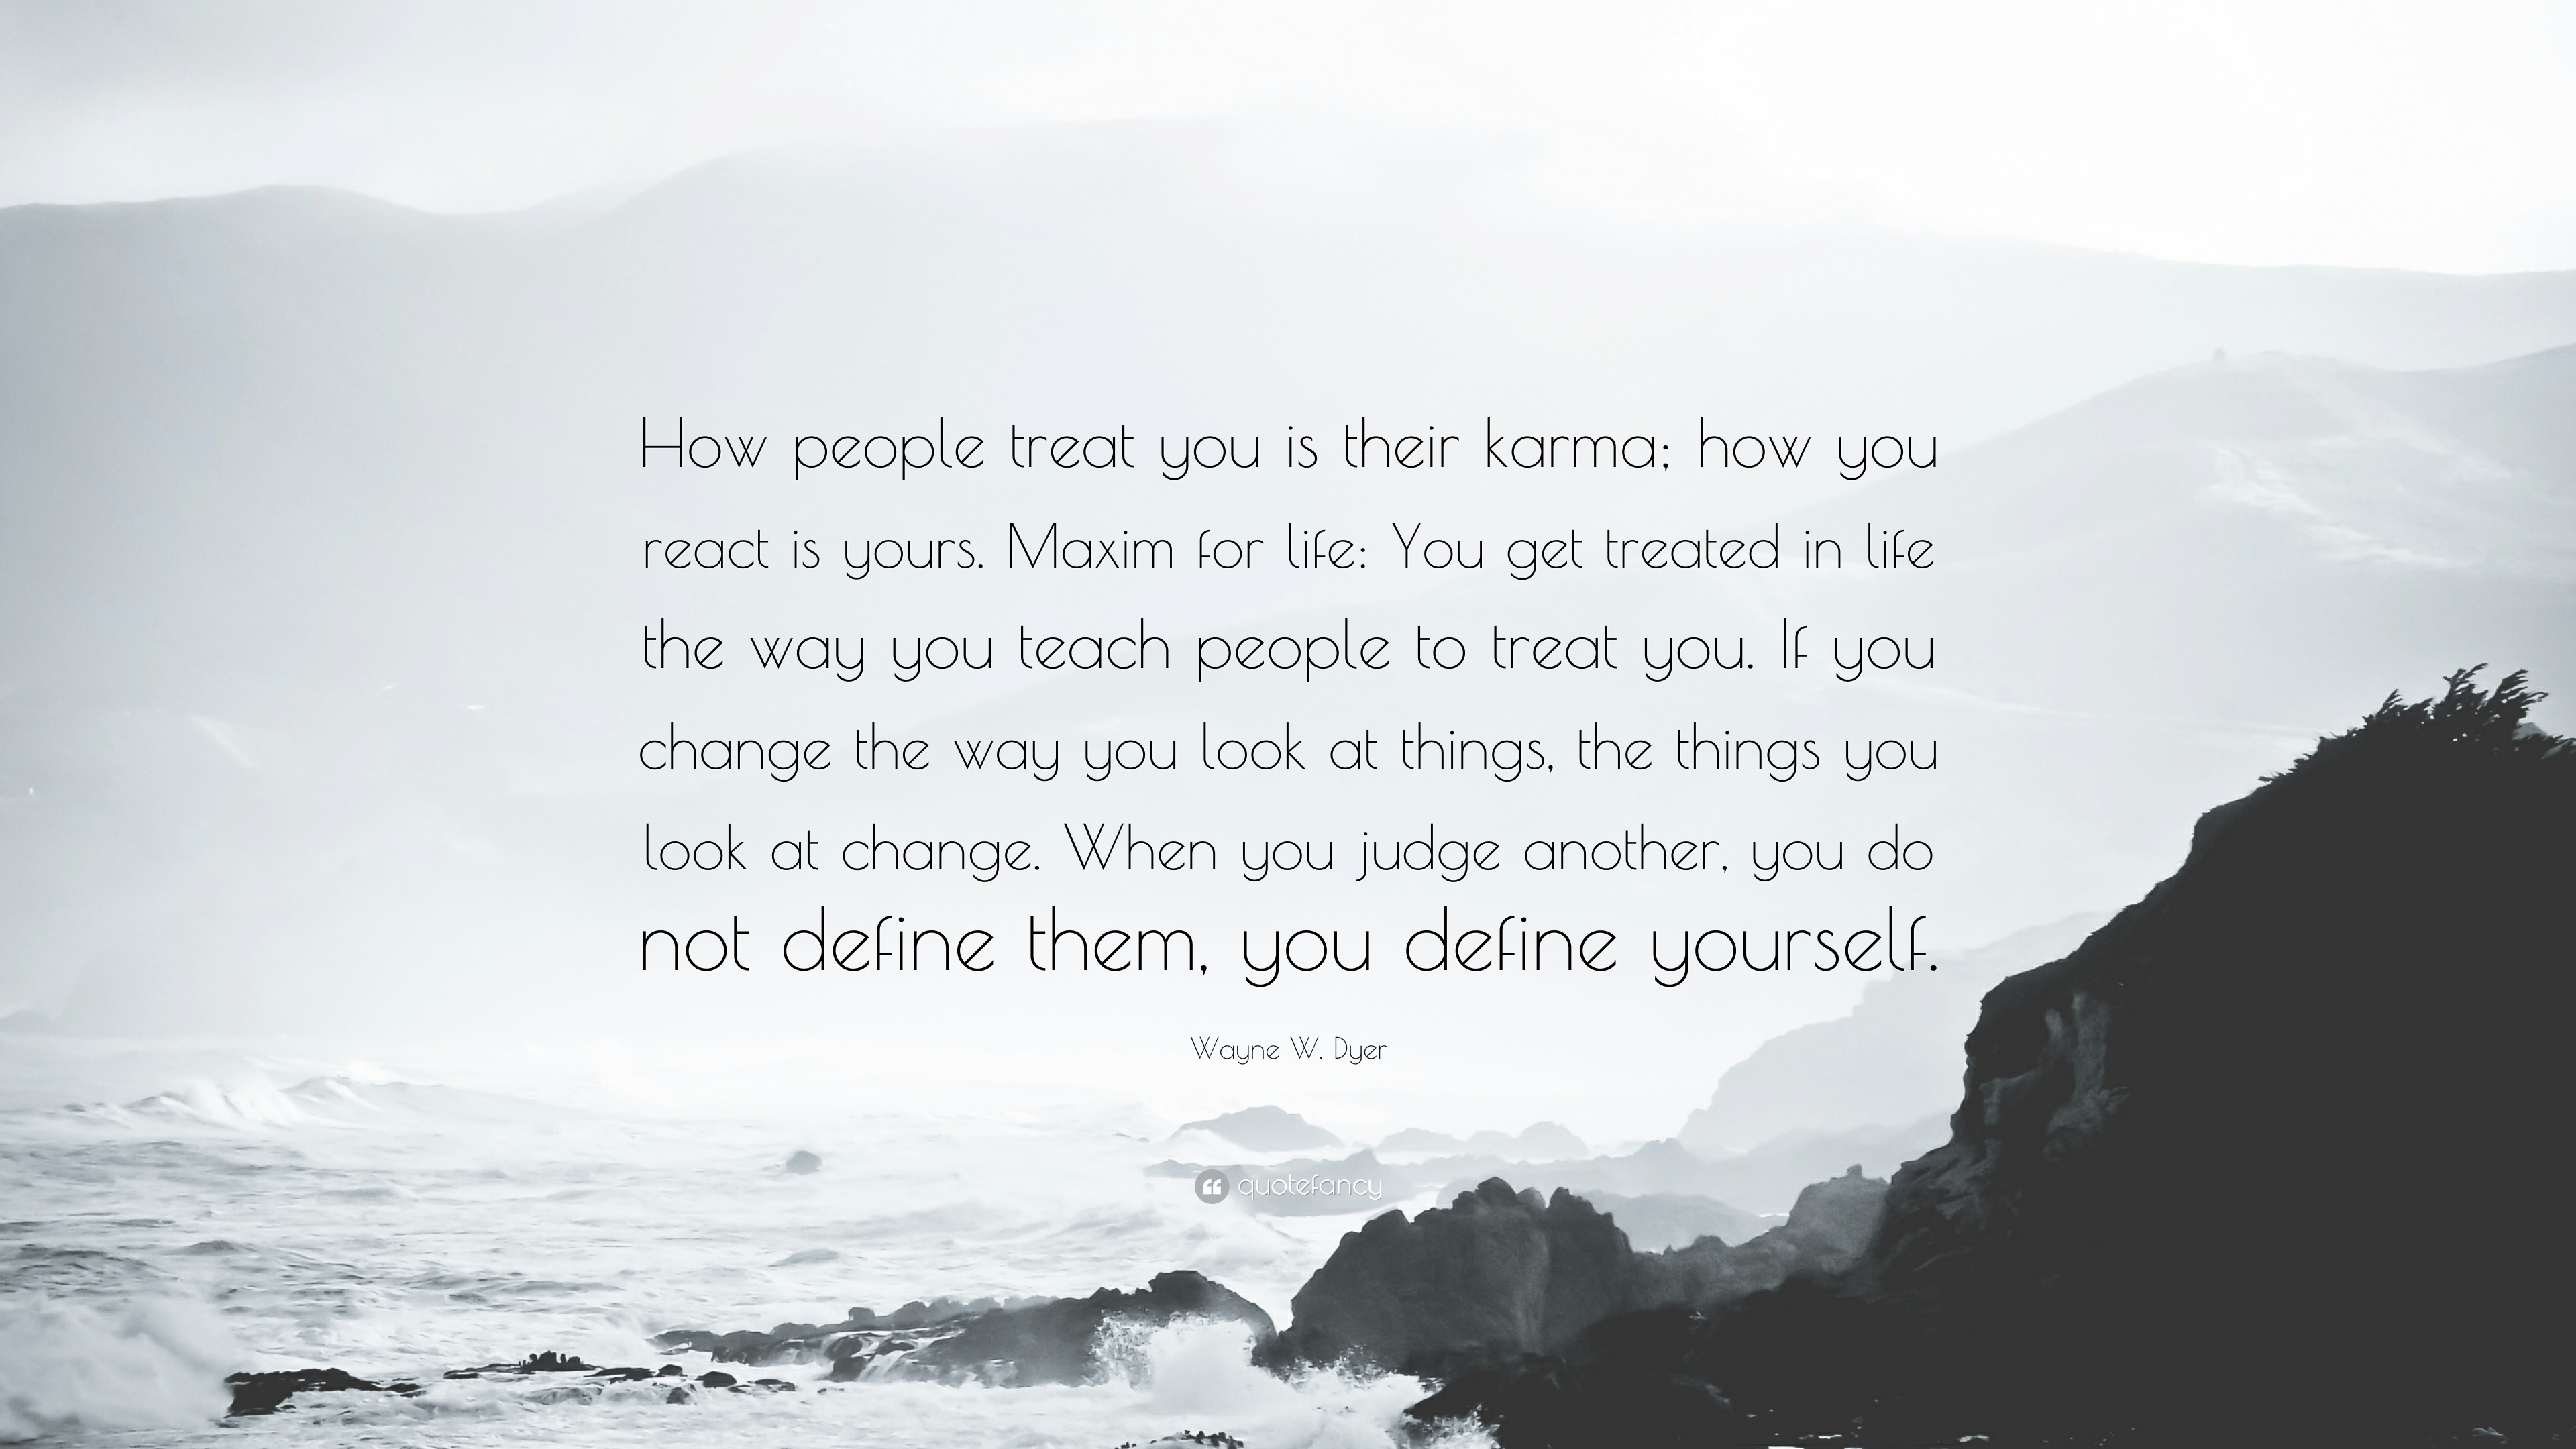 Wayne W Dyer Quote How People Treat You Is Their Karma How You